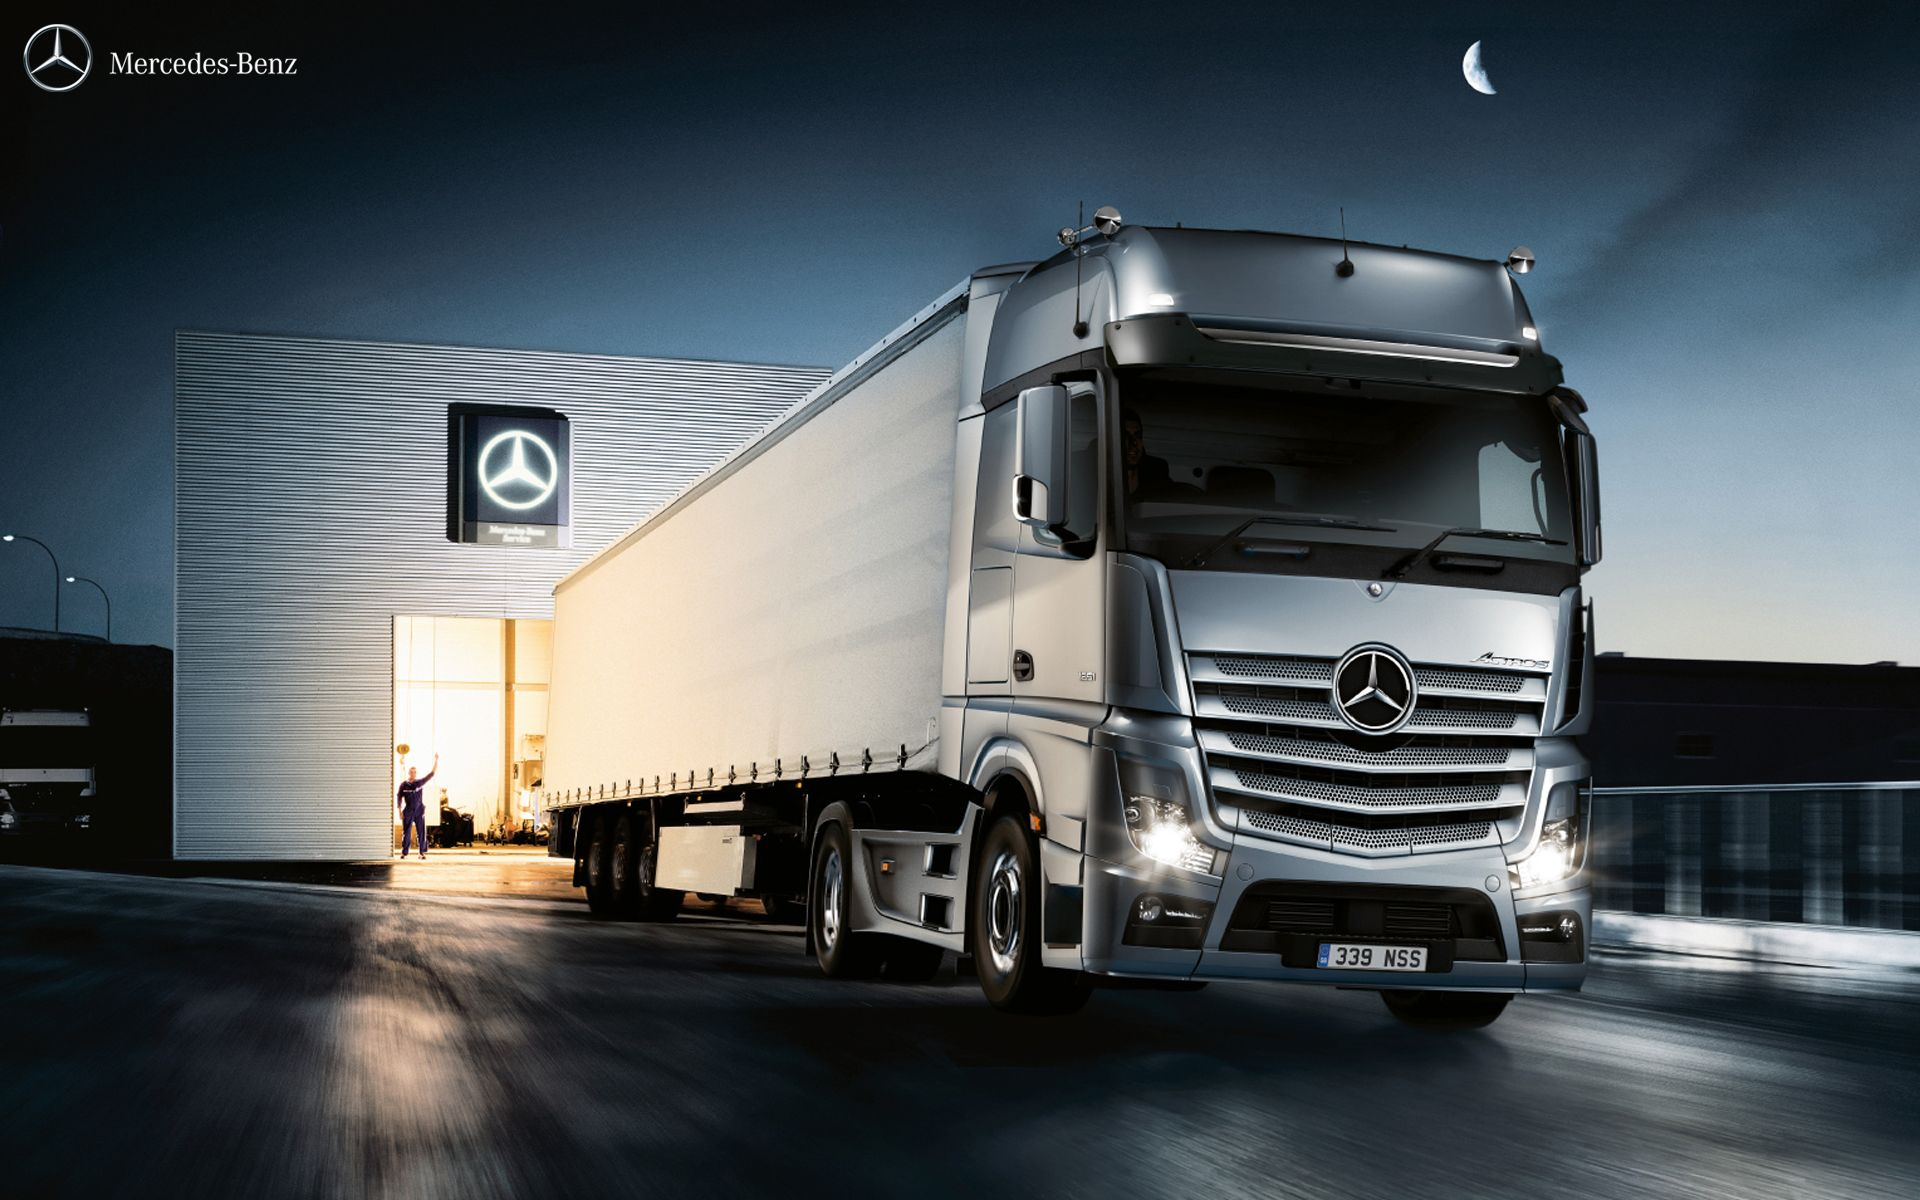 The new actros leaving the warehouse actros mercedes actrostrucks trucking